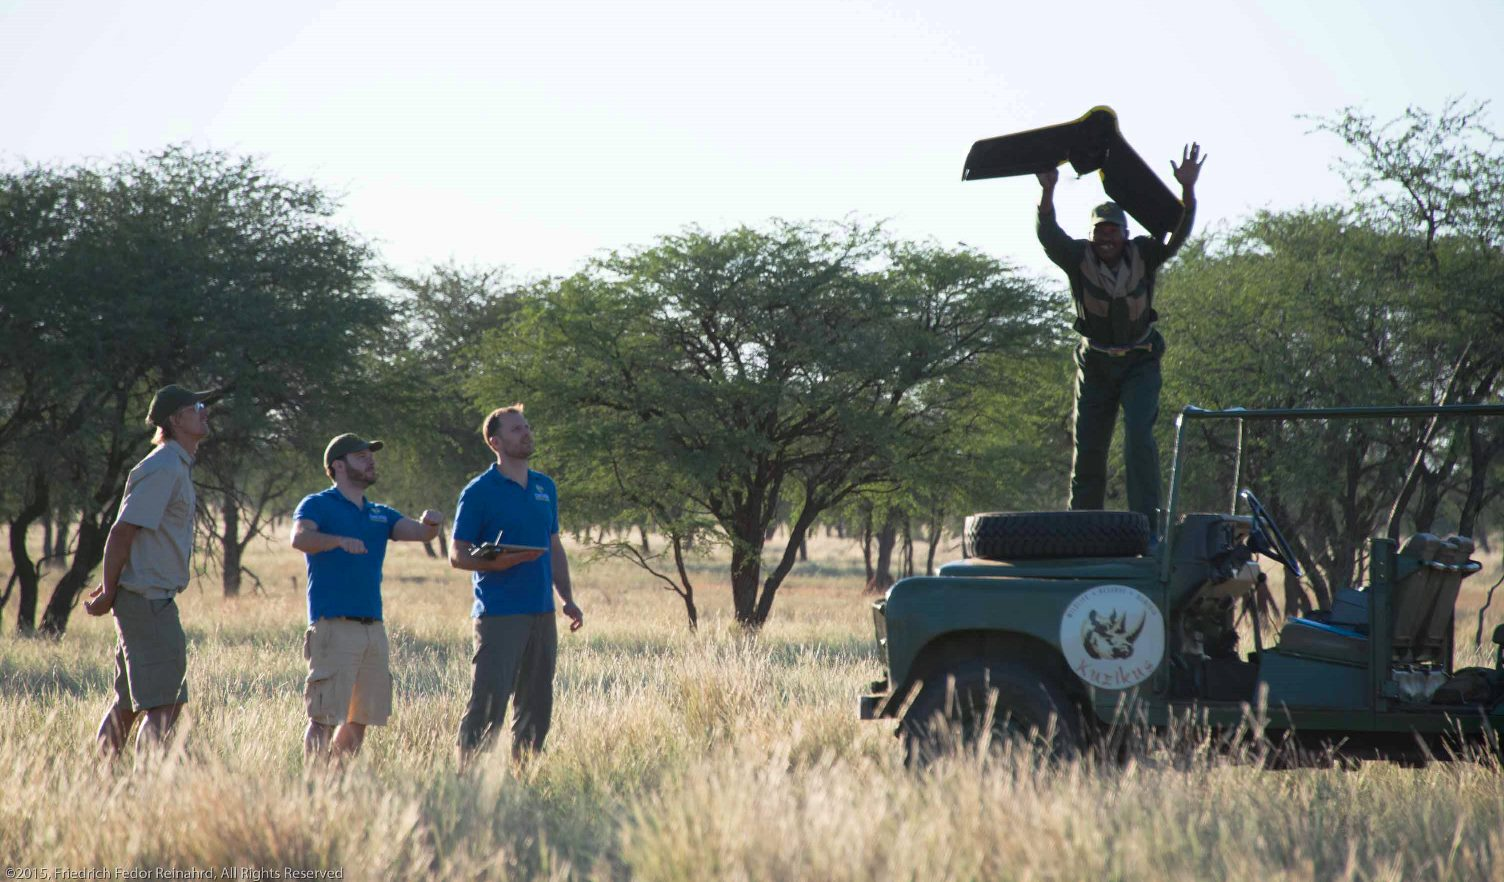 The research team launches the unmanned aerial vehicle (UAV, or drone) for a test survey at Kuzikus reserve, Namibia.